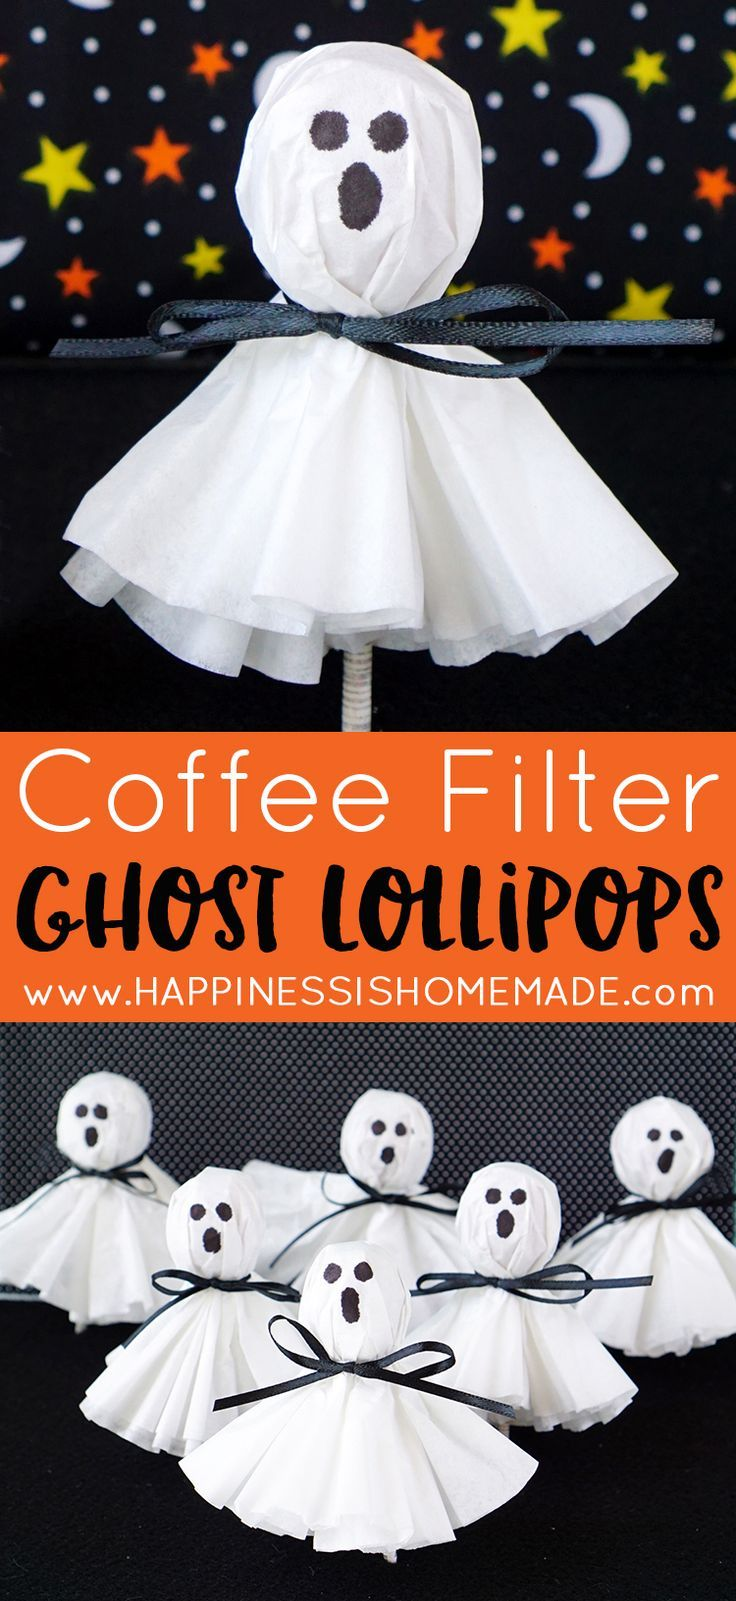 Wonderful Halloween Treat Crafts Part - 11: These Coffee Filter Ghost Lollipops Are A Cute And Easy Twist On Classic  Kleenex Tissue Ghosts. A Nostalgic And Fun Halloween Treat Thatu0027s Sure To  Be A Big ...